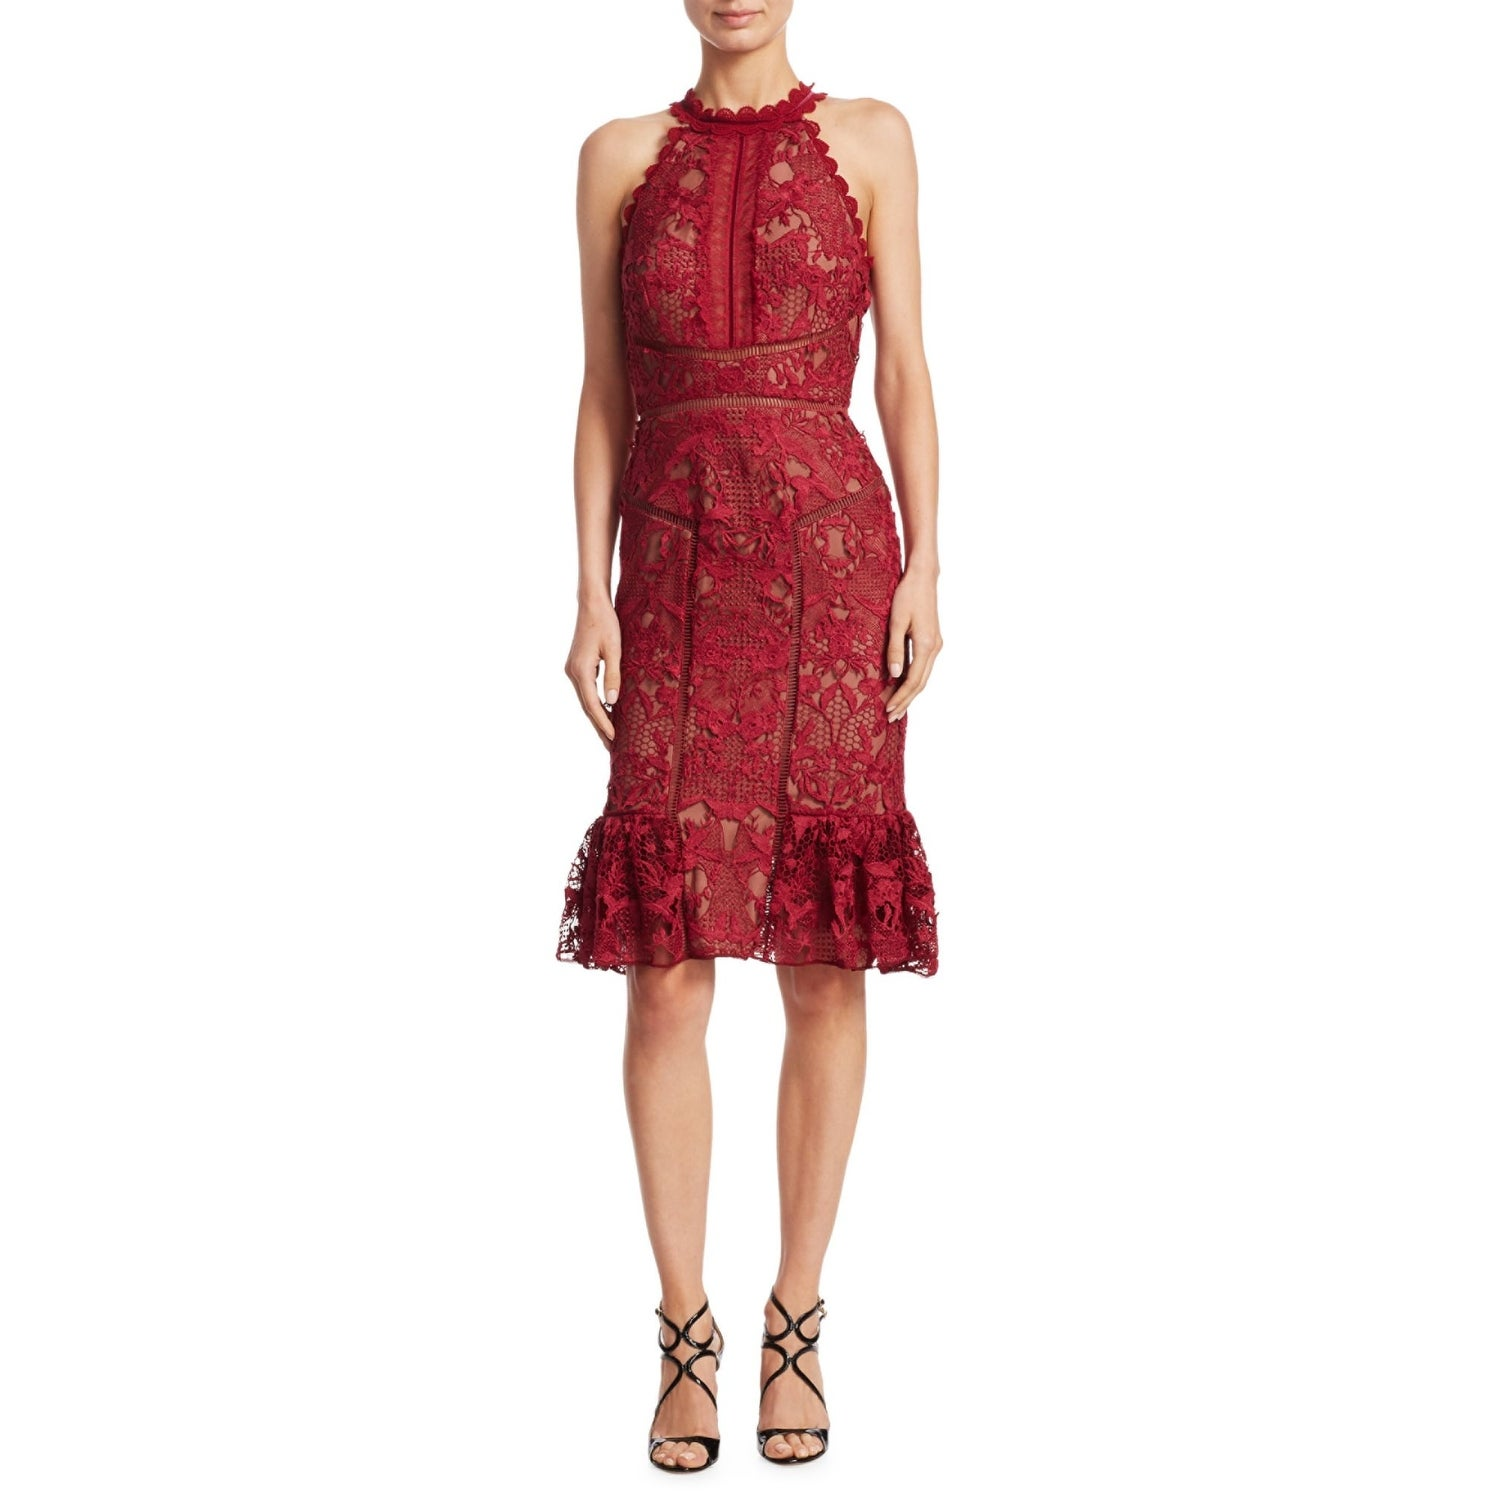 5ad95706 Shop Marchesa Notte Guipure Lace Velvet Trim Cocktail Dress Wine - 4 - Free  Shipping Today - Overstock - 25583222